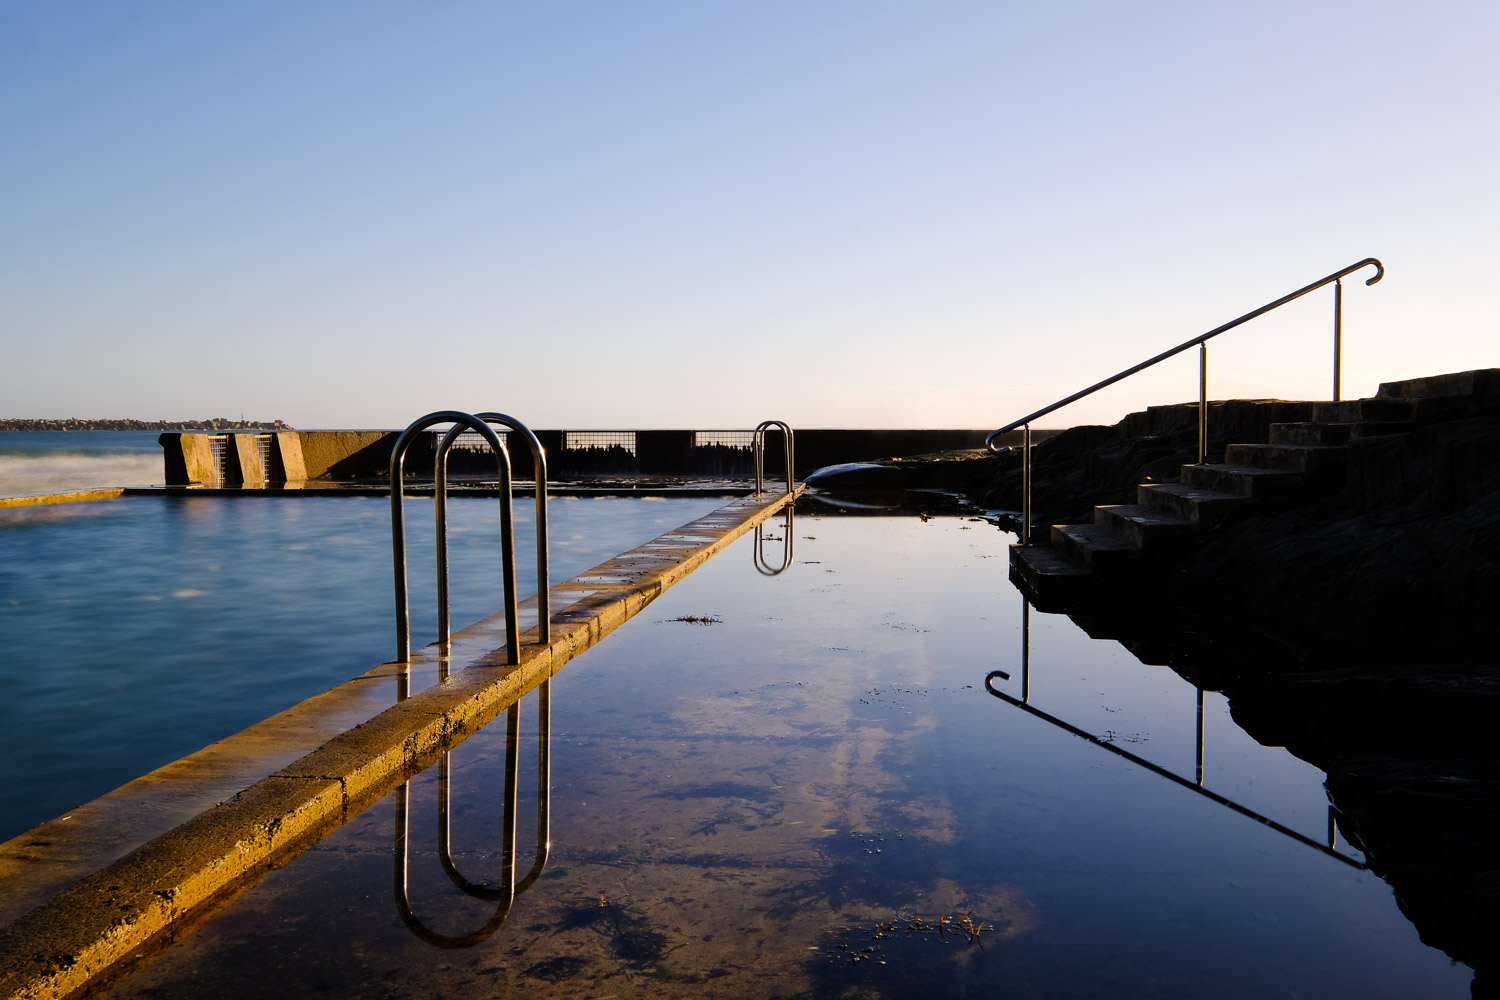 ocean pool ND filters for long exposure photography